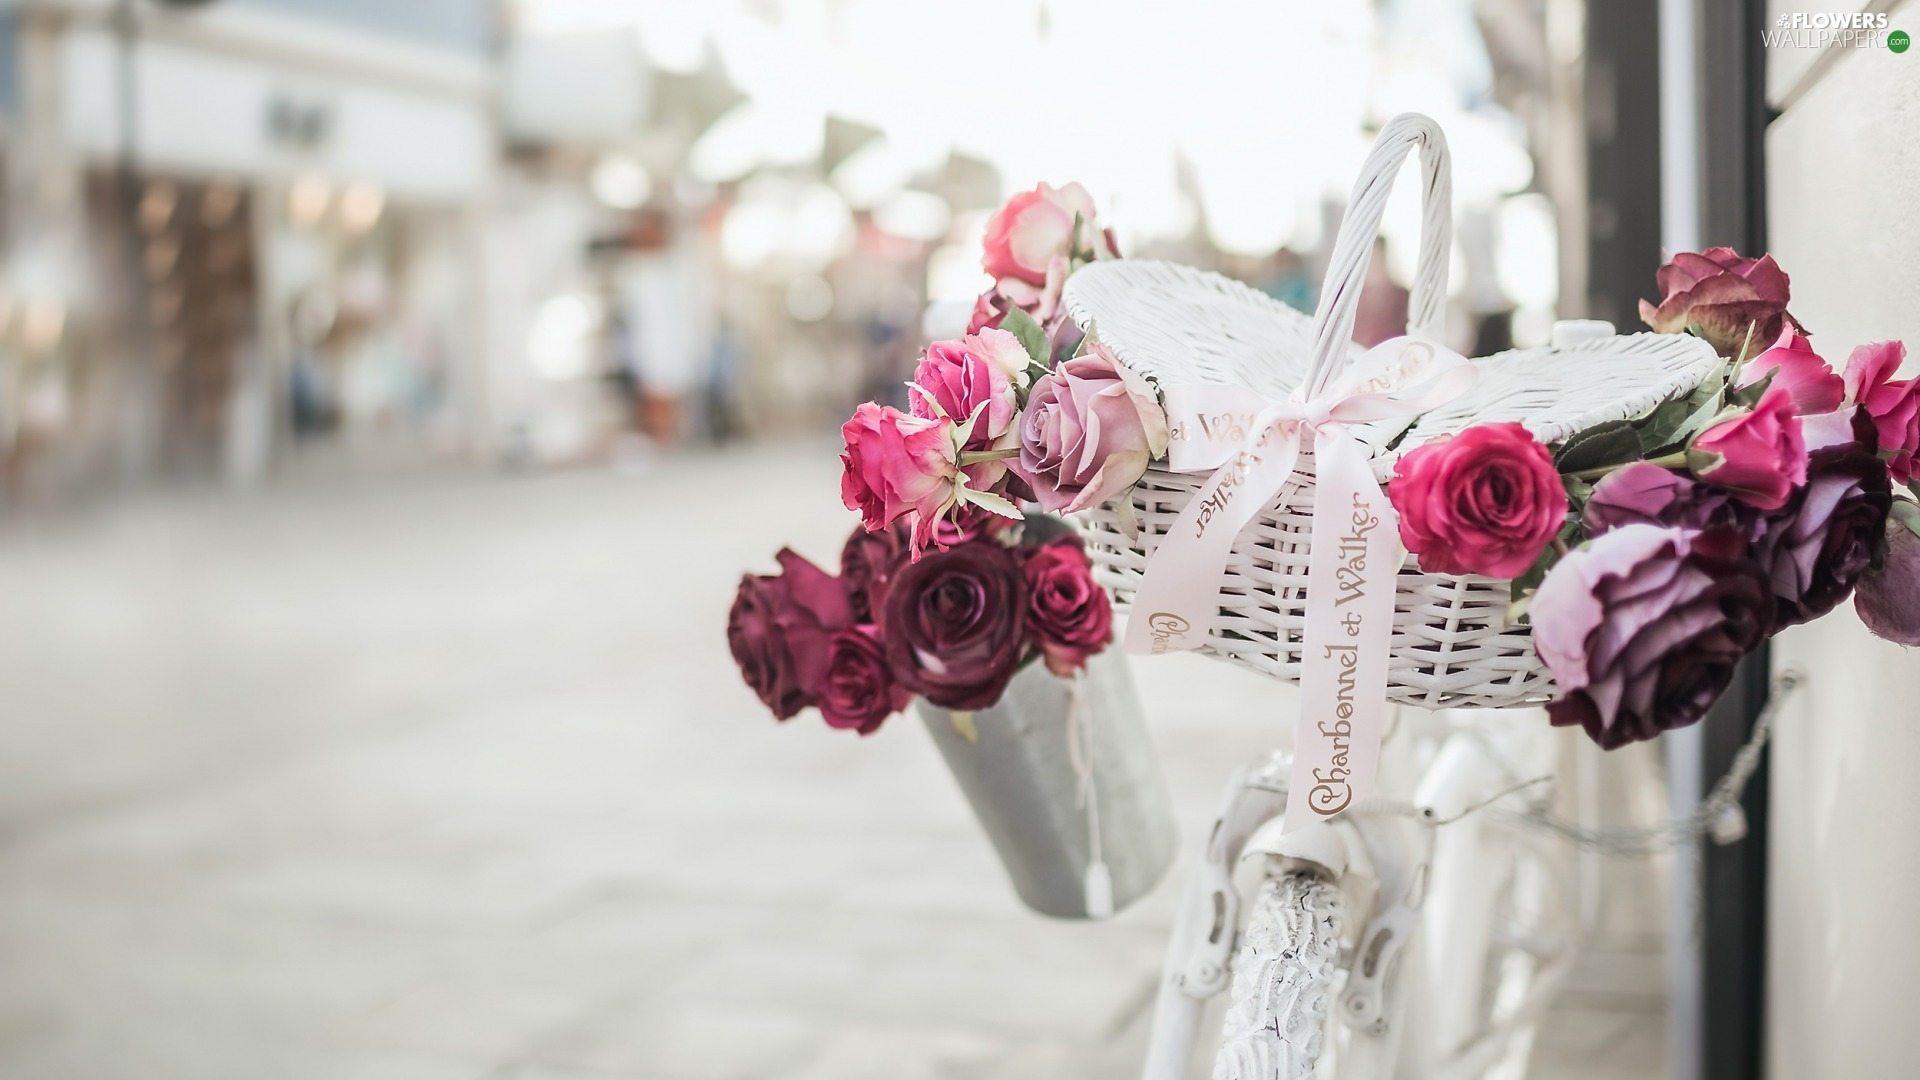 roses, basket, Bike, blur, White